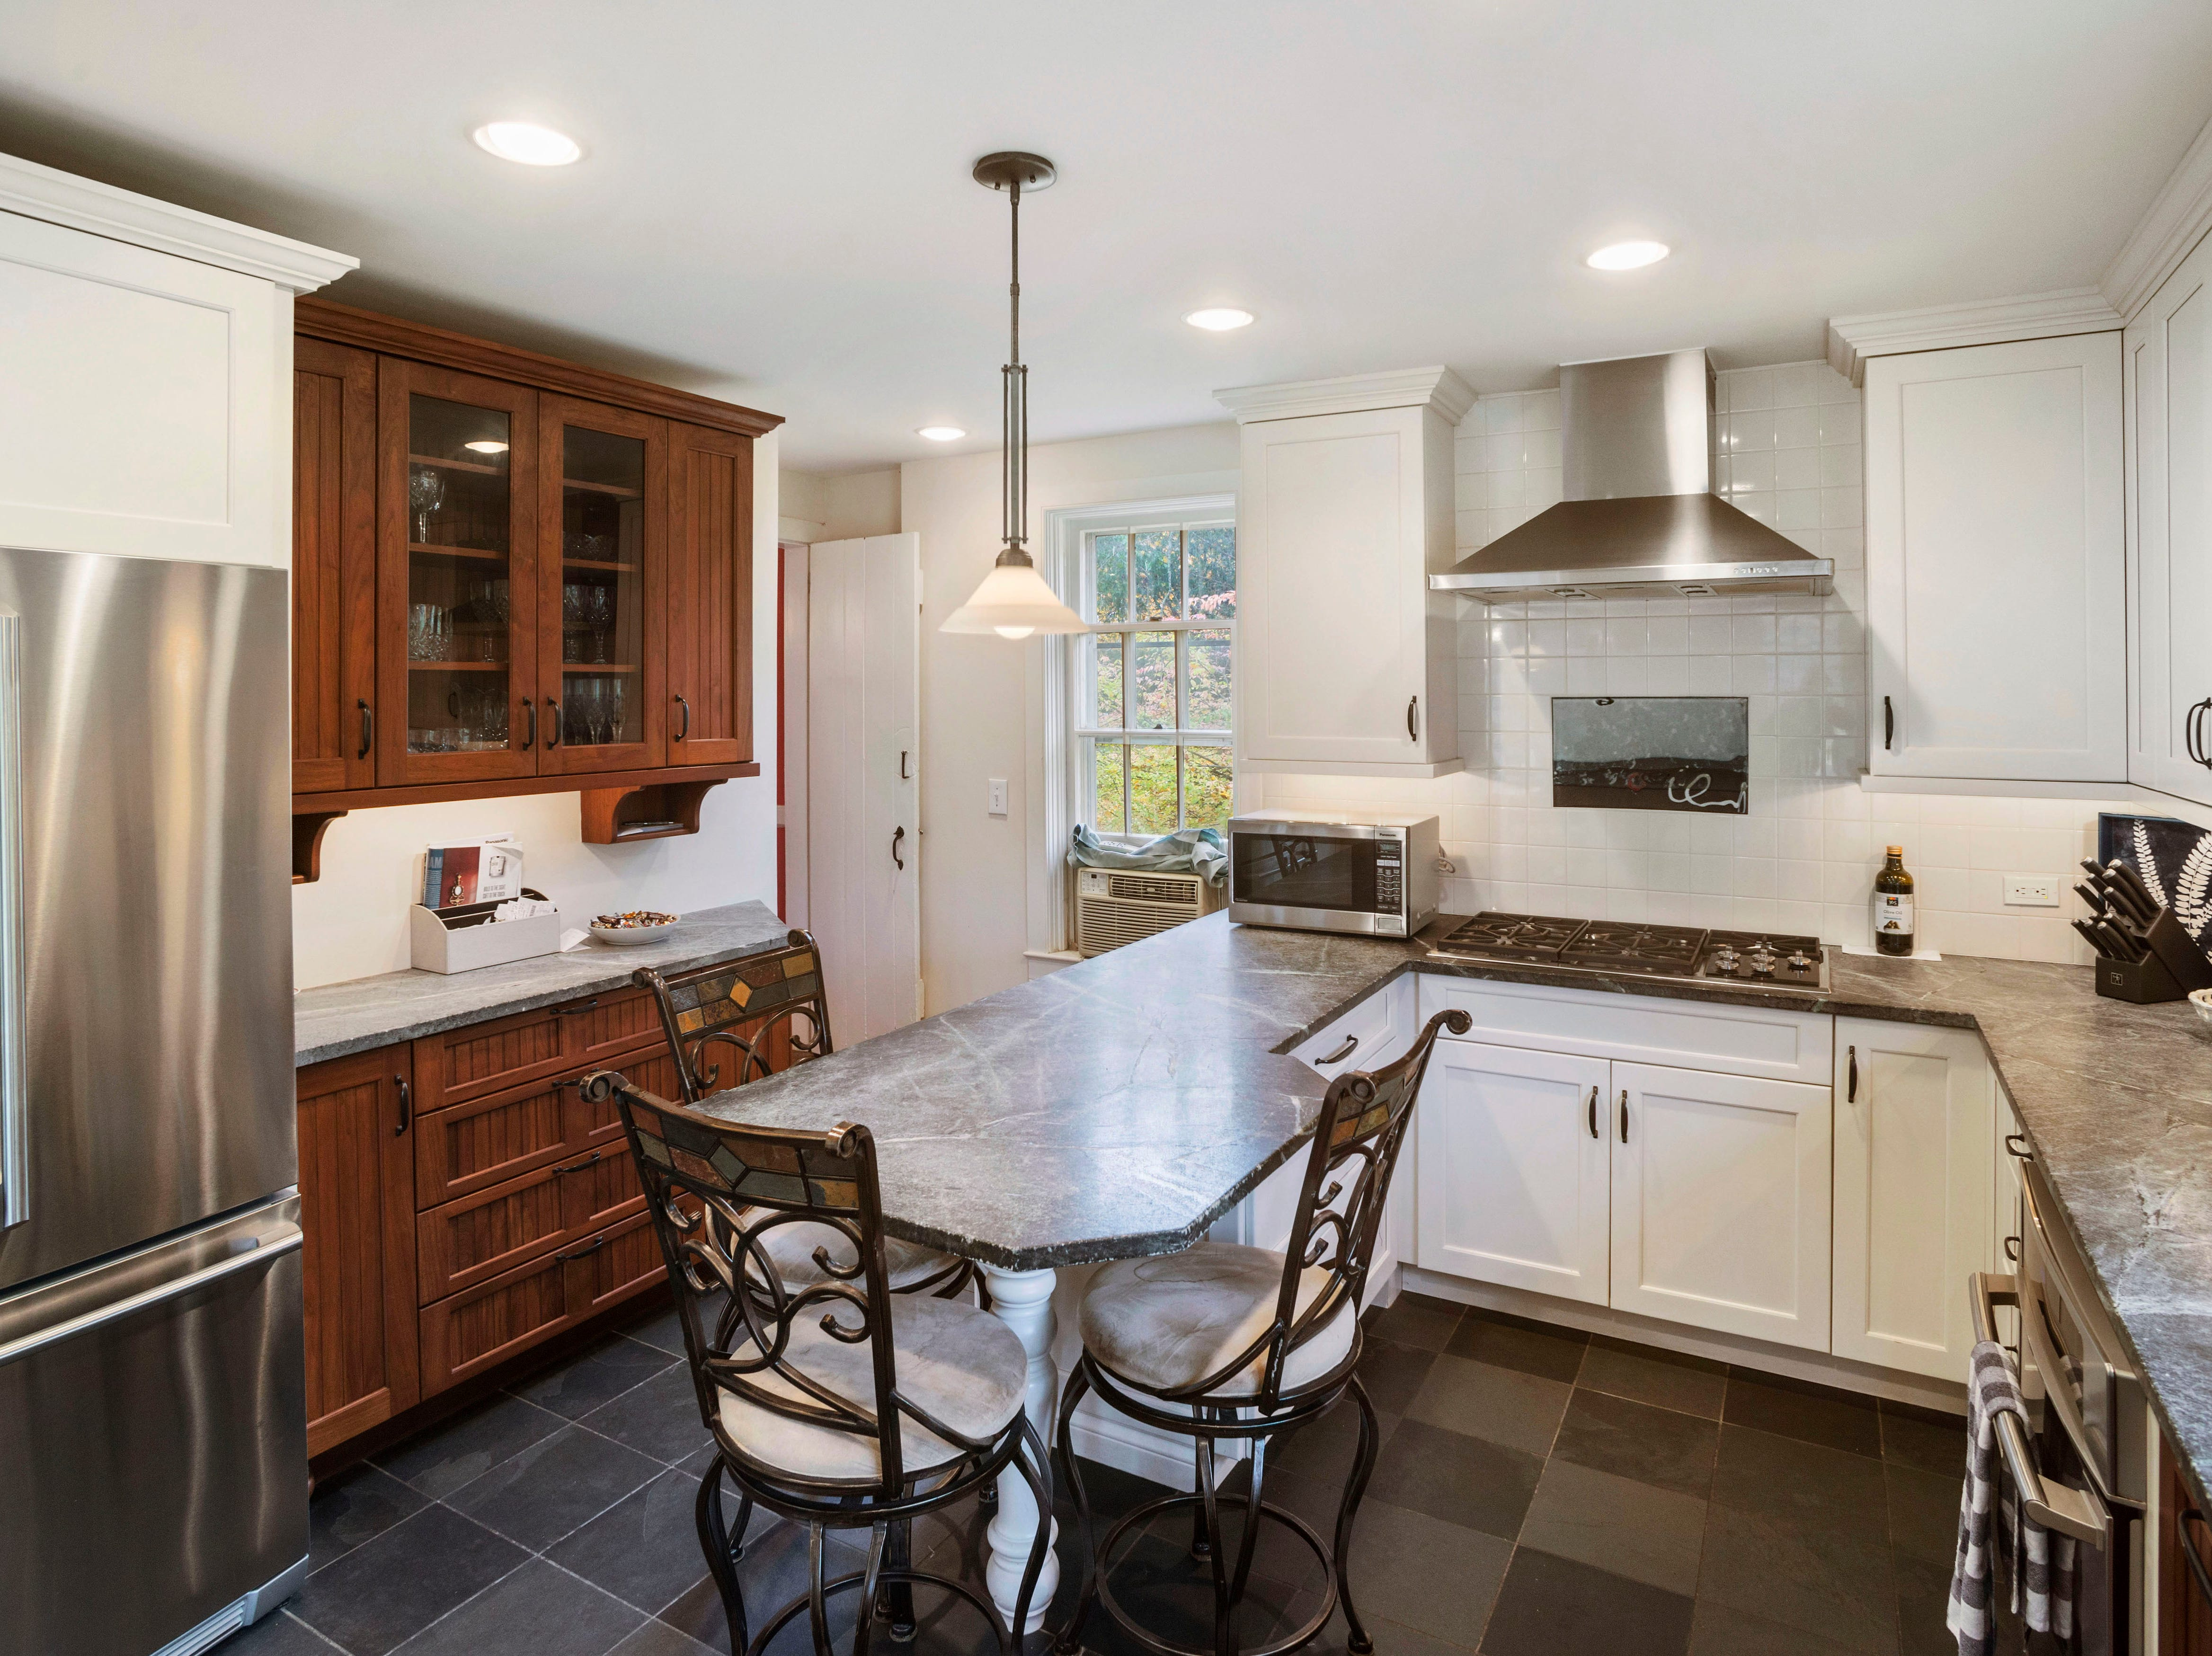 The kitchen in the Murphy-Voorhees home has been updated to 21st-century standards with a side-by-side refrigerator with a bottom freezer, modern cabinets, a slate floor, recessed and pendant lights and a modern cooktop with an equally modern hood.